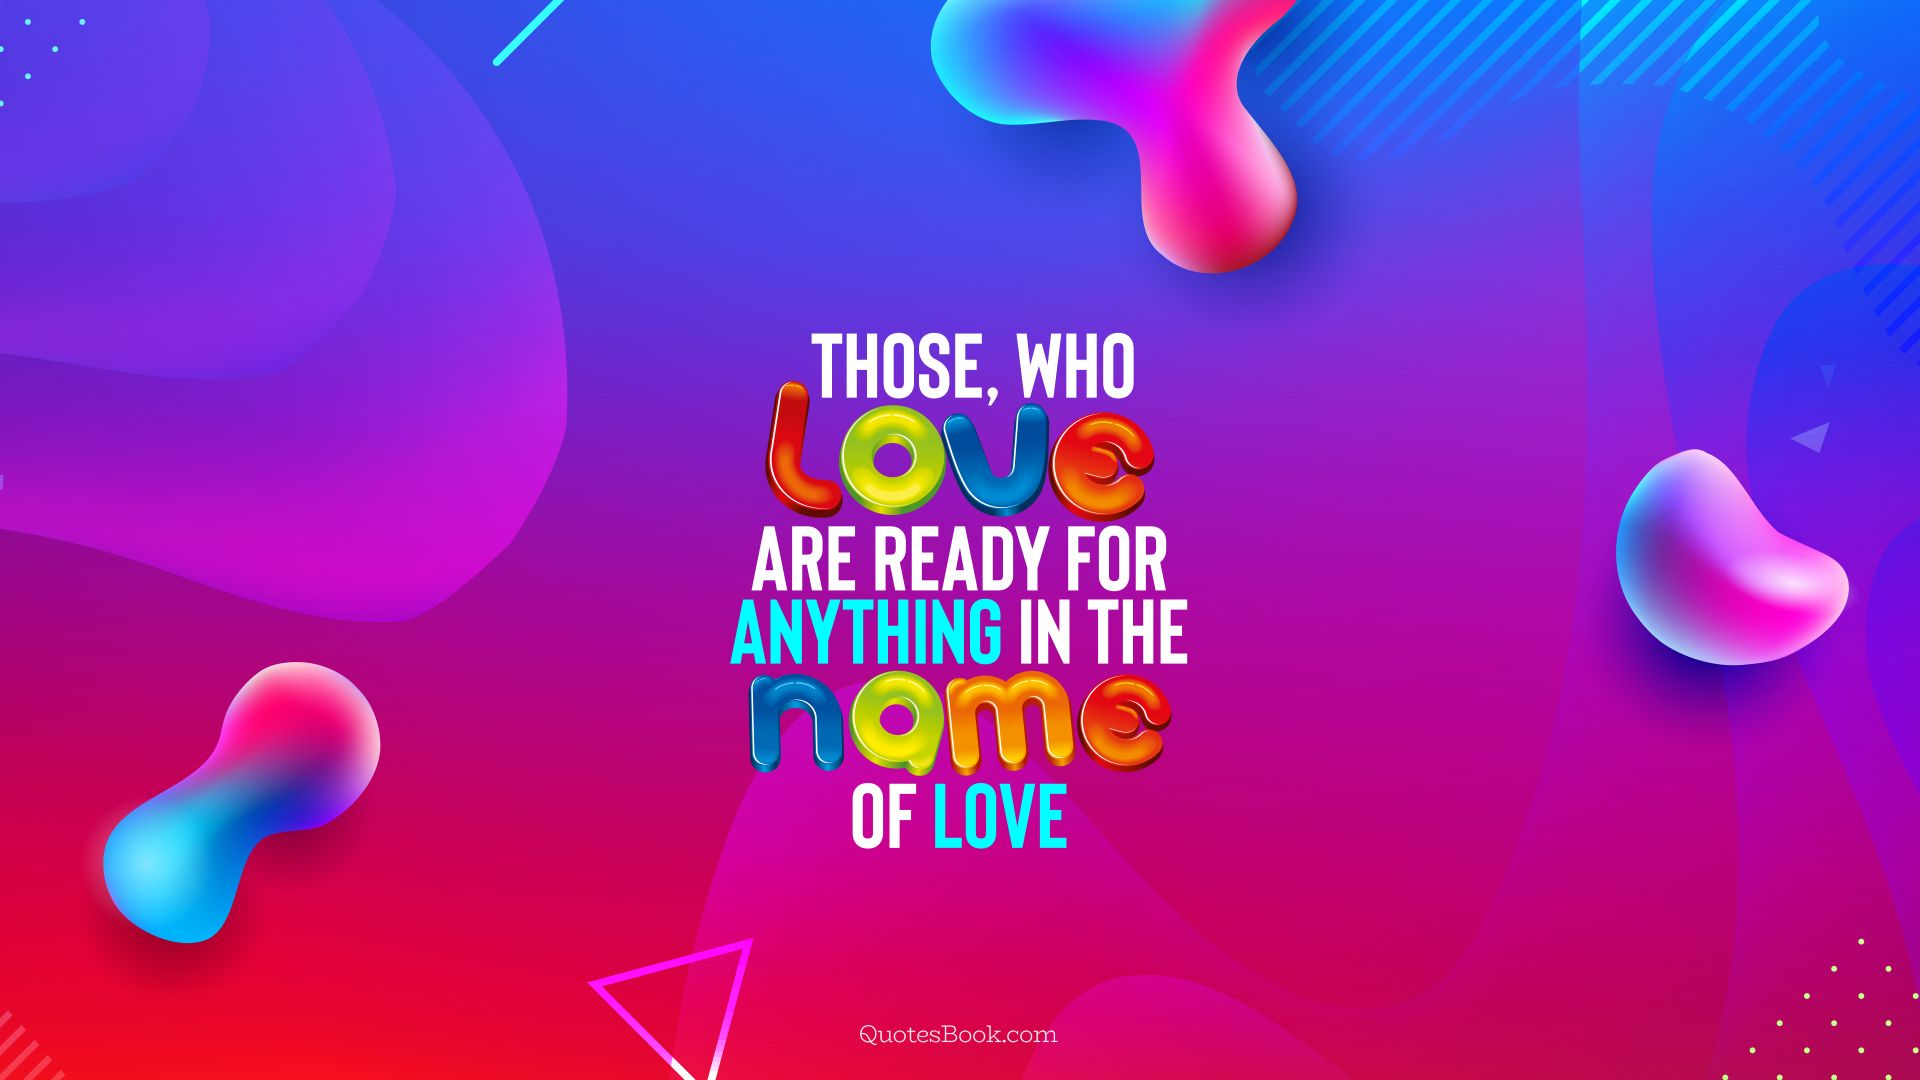 Those, who love, are ready for anything in the name of love. - Quote by QuotesBook